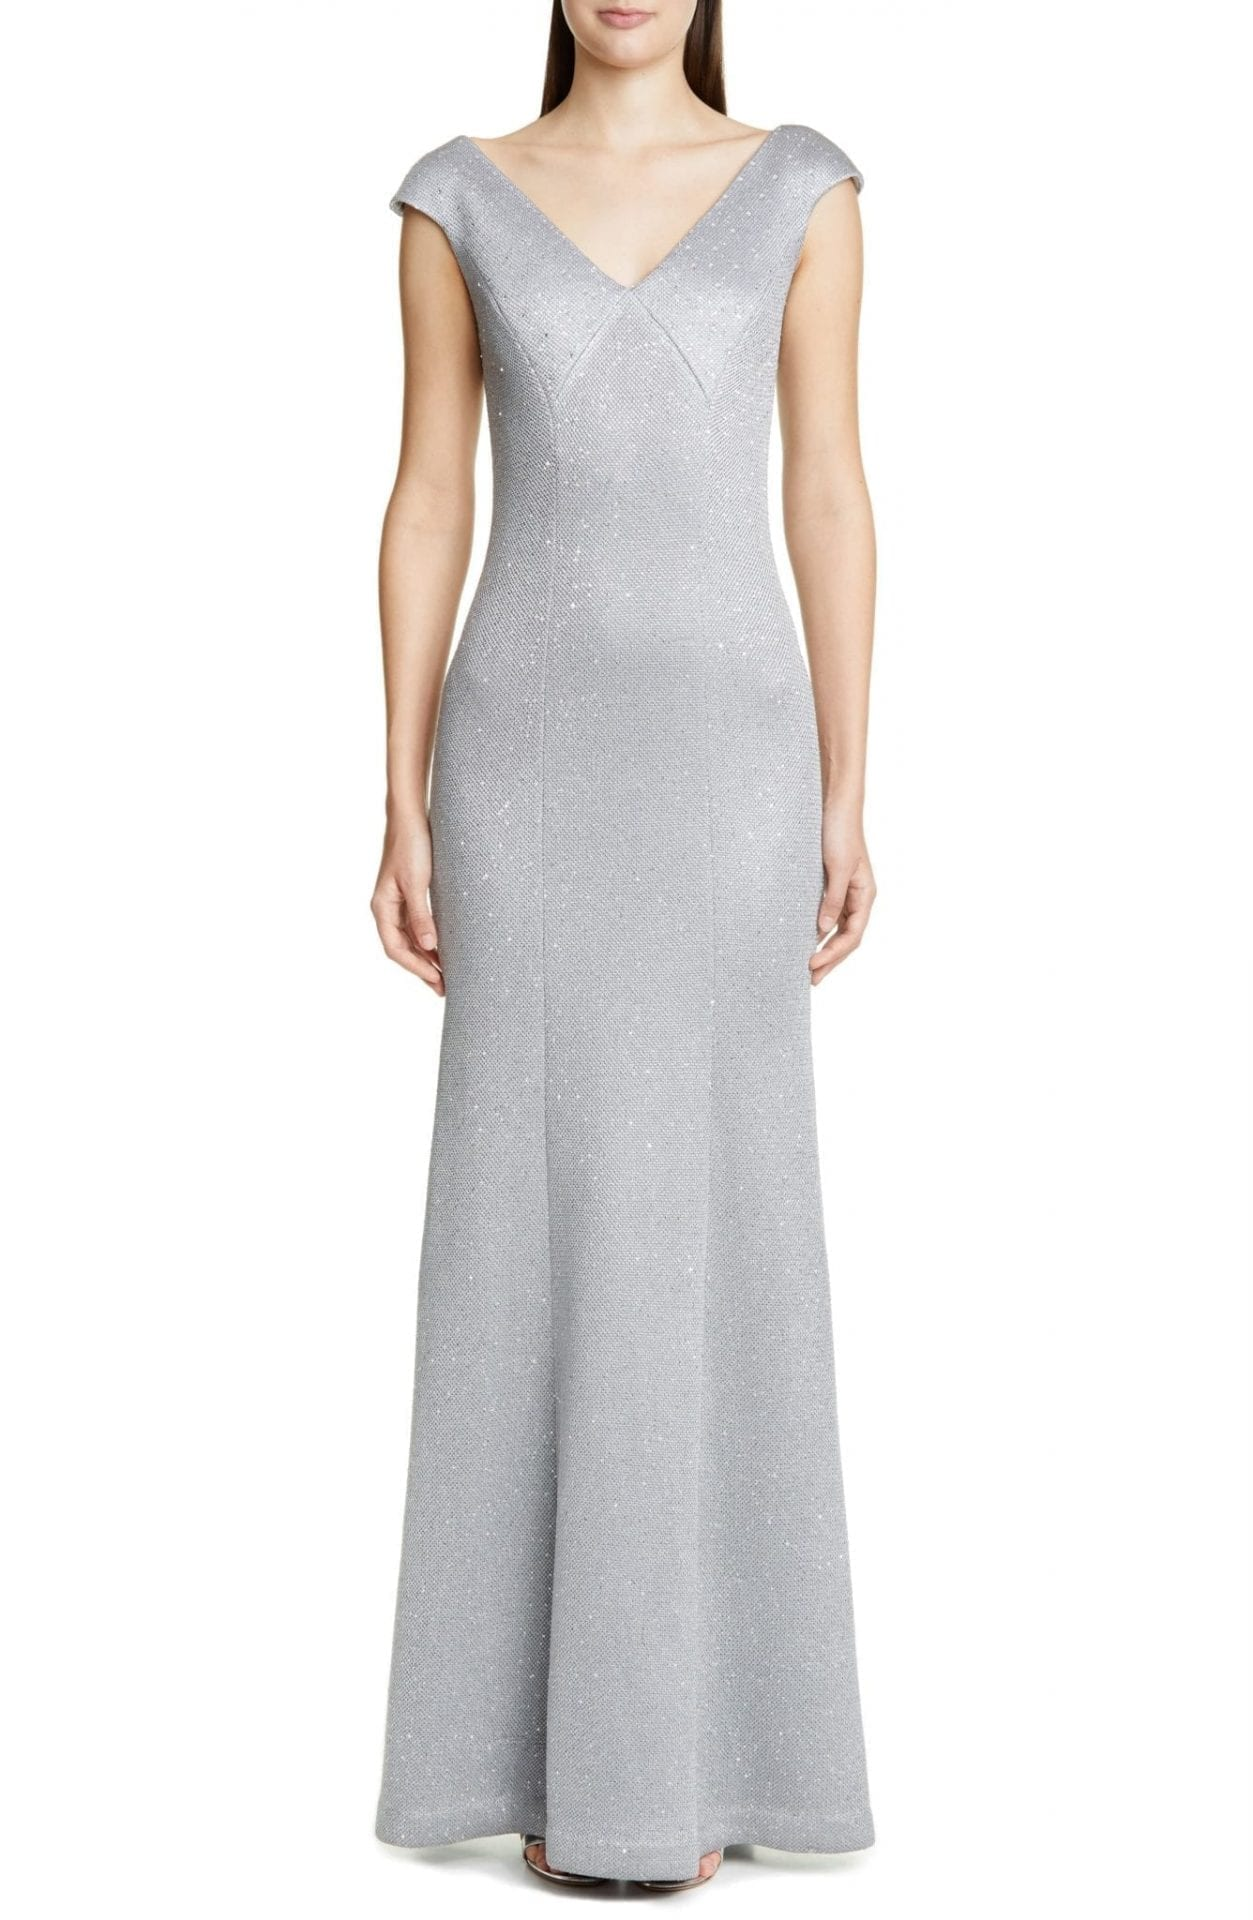 ST. JOHN COLLECTION Sequin Bird's Eye Knit Gown